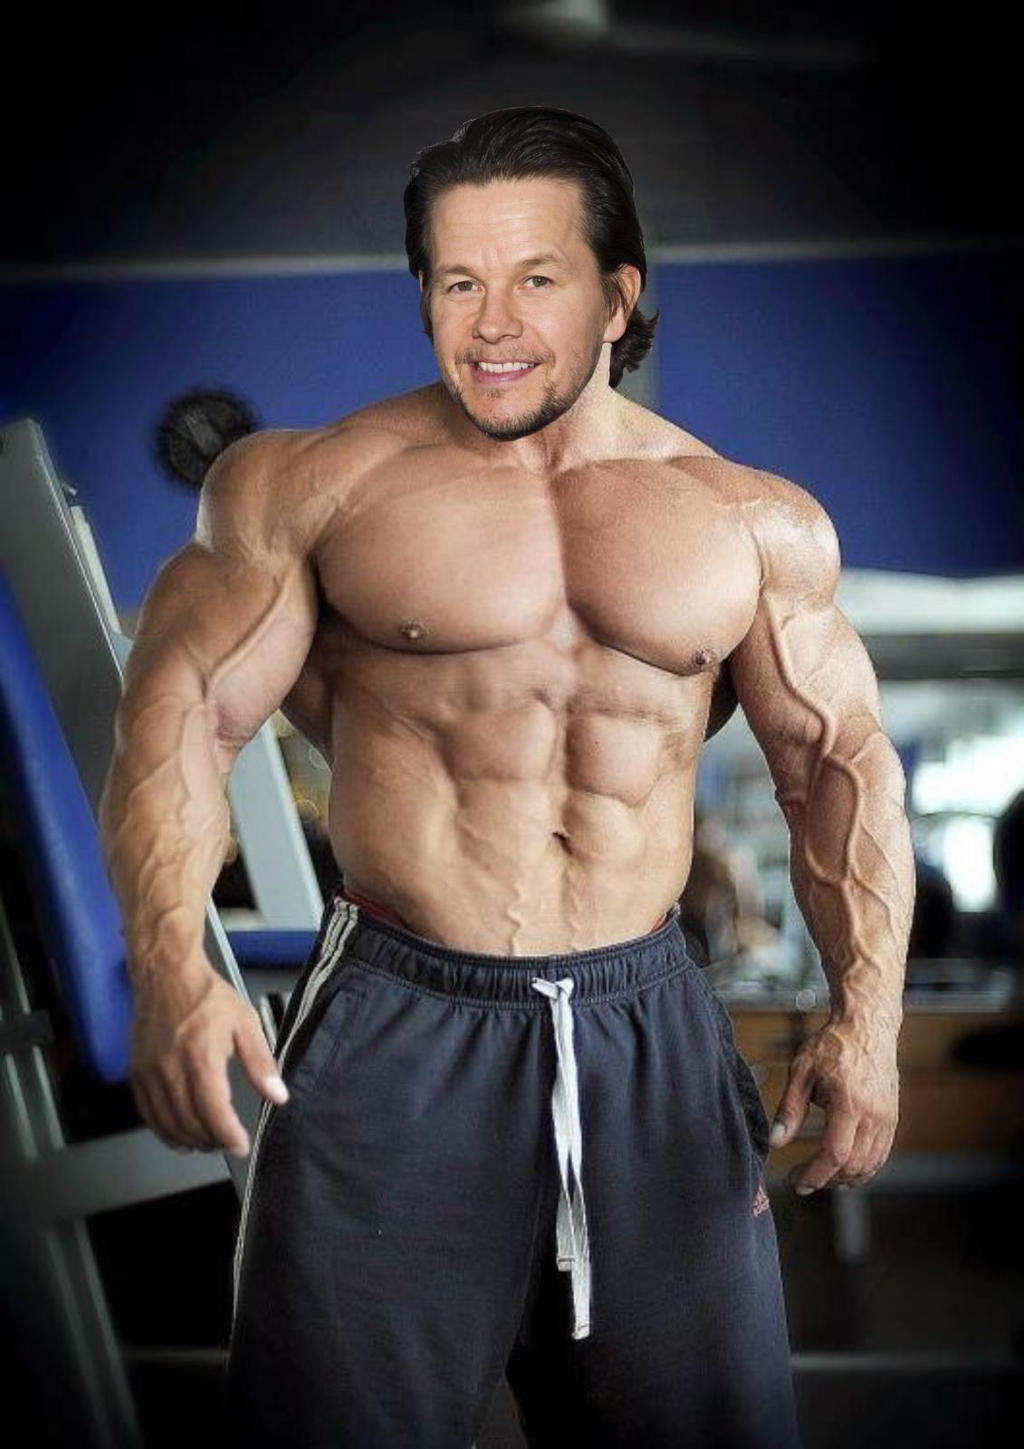 Muscle Morph: Mark Wahlberg 3 by doryfan1 on DeviantArt Justin Timberlake Tour 2015